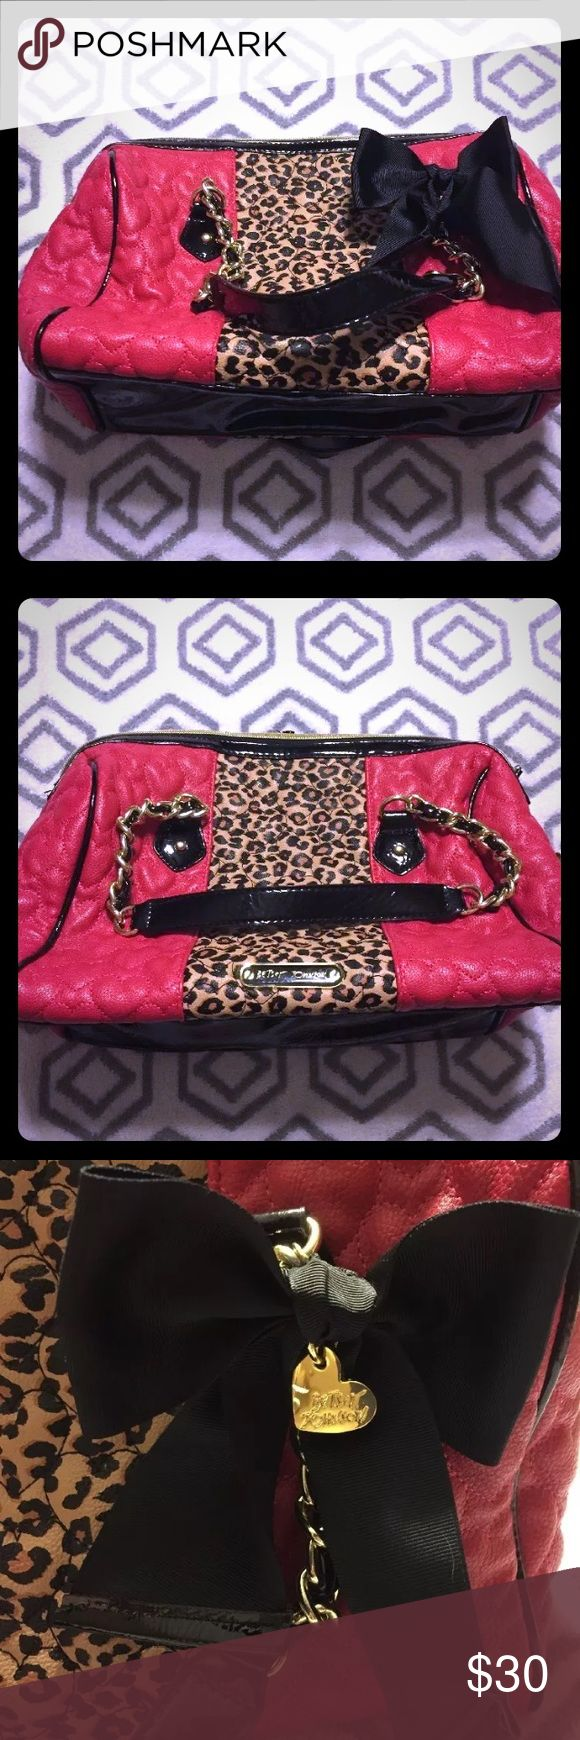 Betsy Johnson Purse Gently used like new WOT Authentic Betsy Johnson shoulder bag in pink quilted hearts and leopard with gold details. Has zipper lock feature at side of purse body, 3 interior pockets and wallet latch. CLEAN, SMOKE FREE HOMED. Betsey Johnson Bags Shoulder Bags